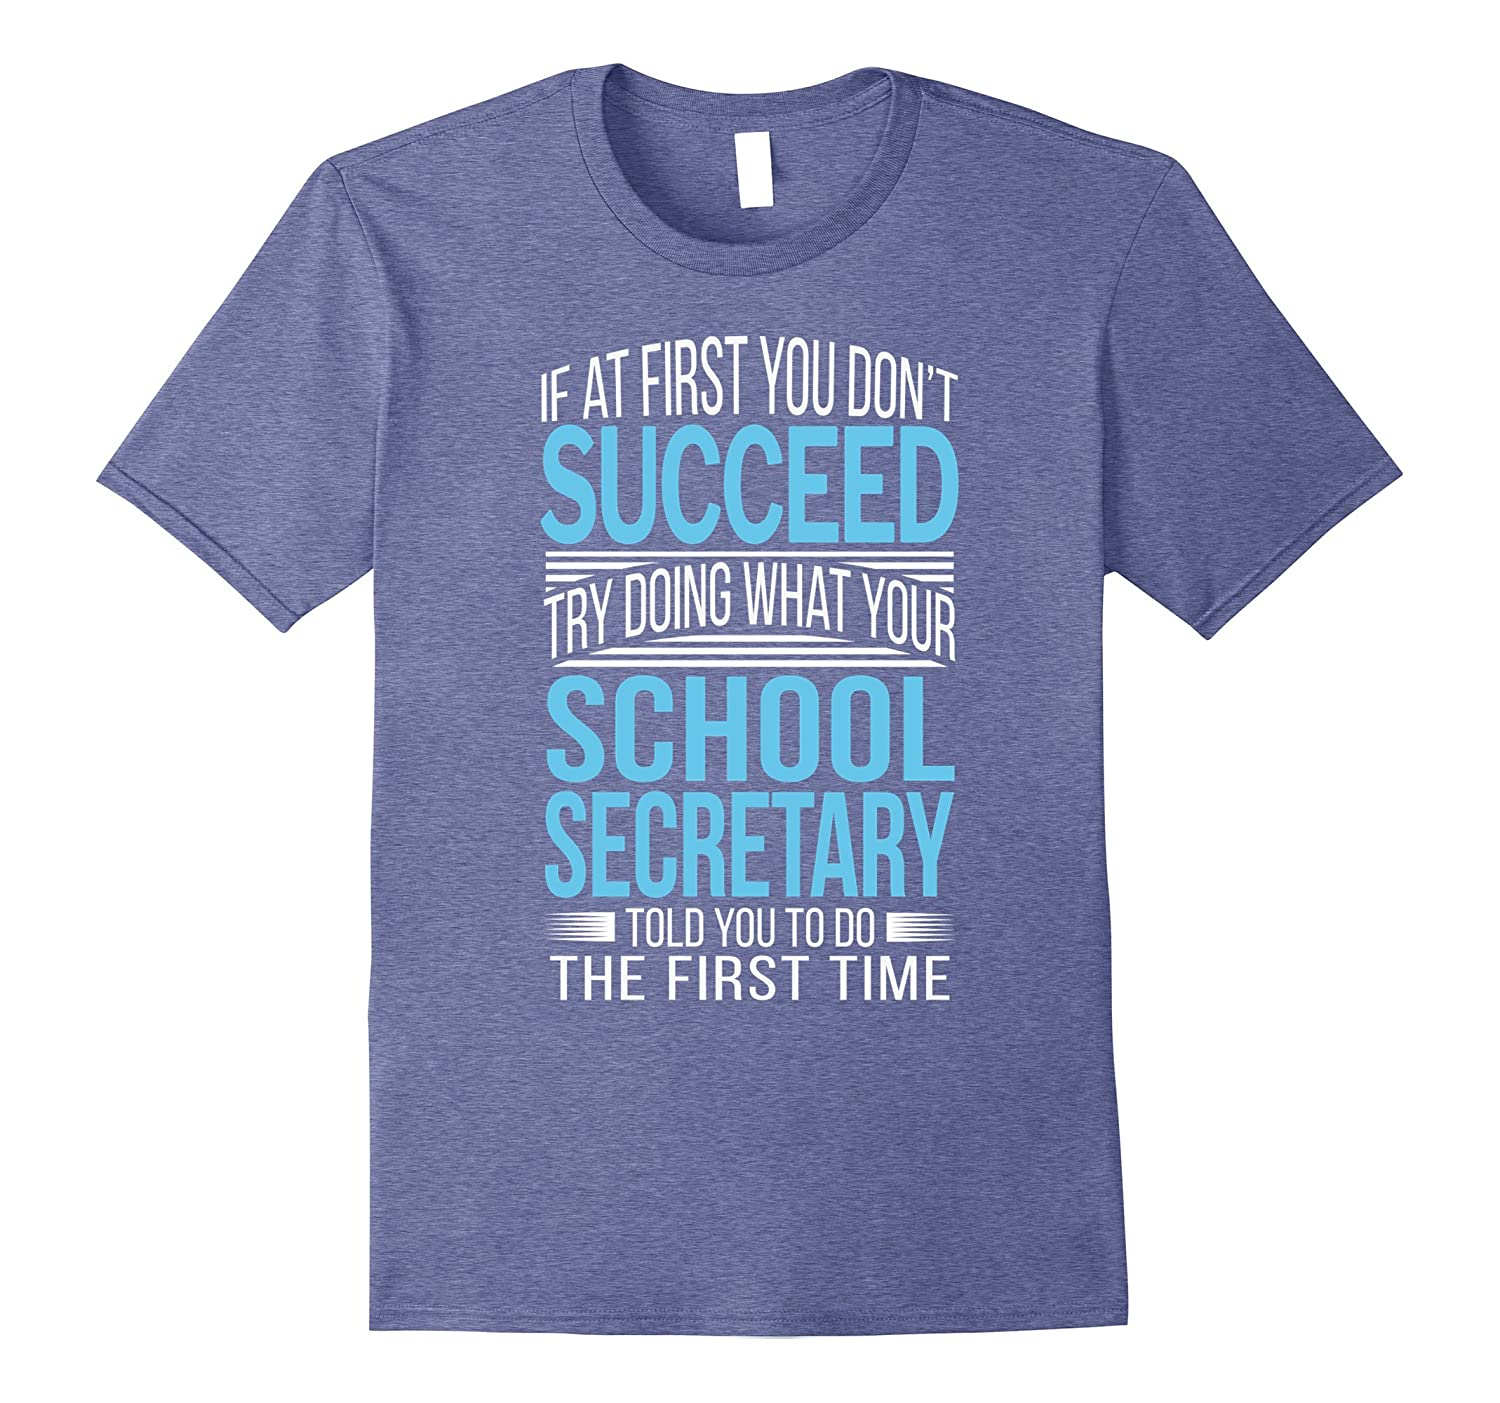 School Secretary Shirt If at first you dont succeed Funny